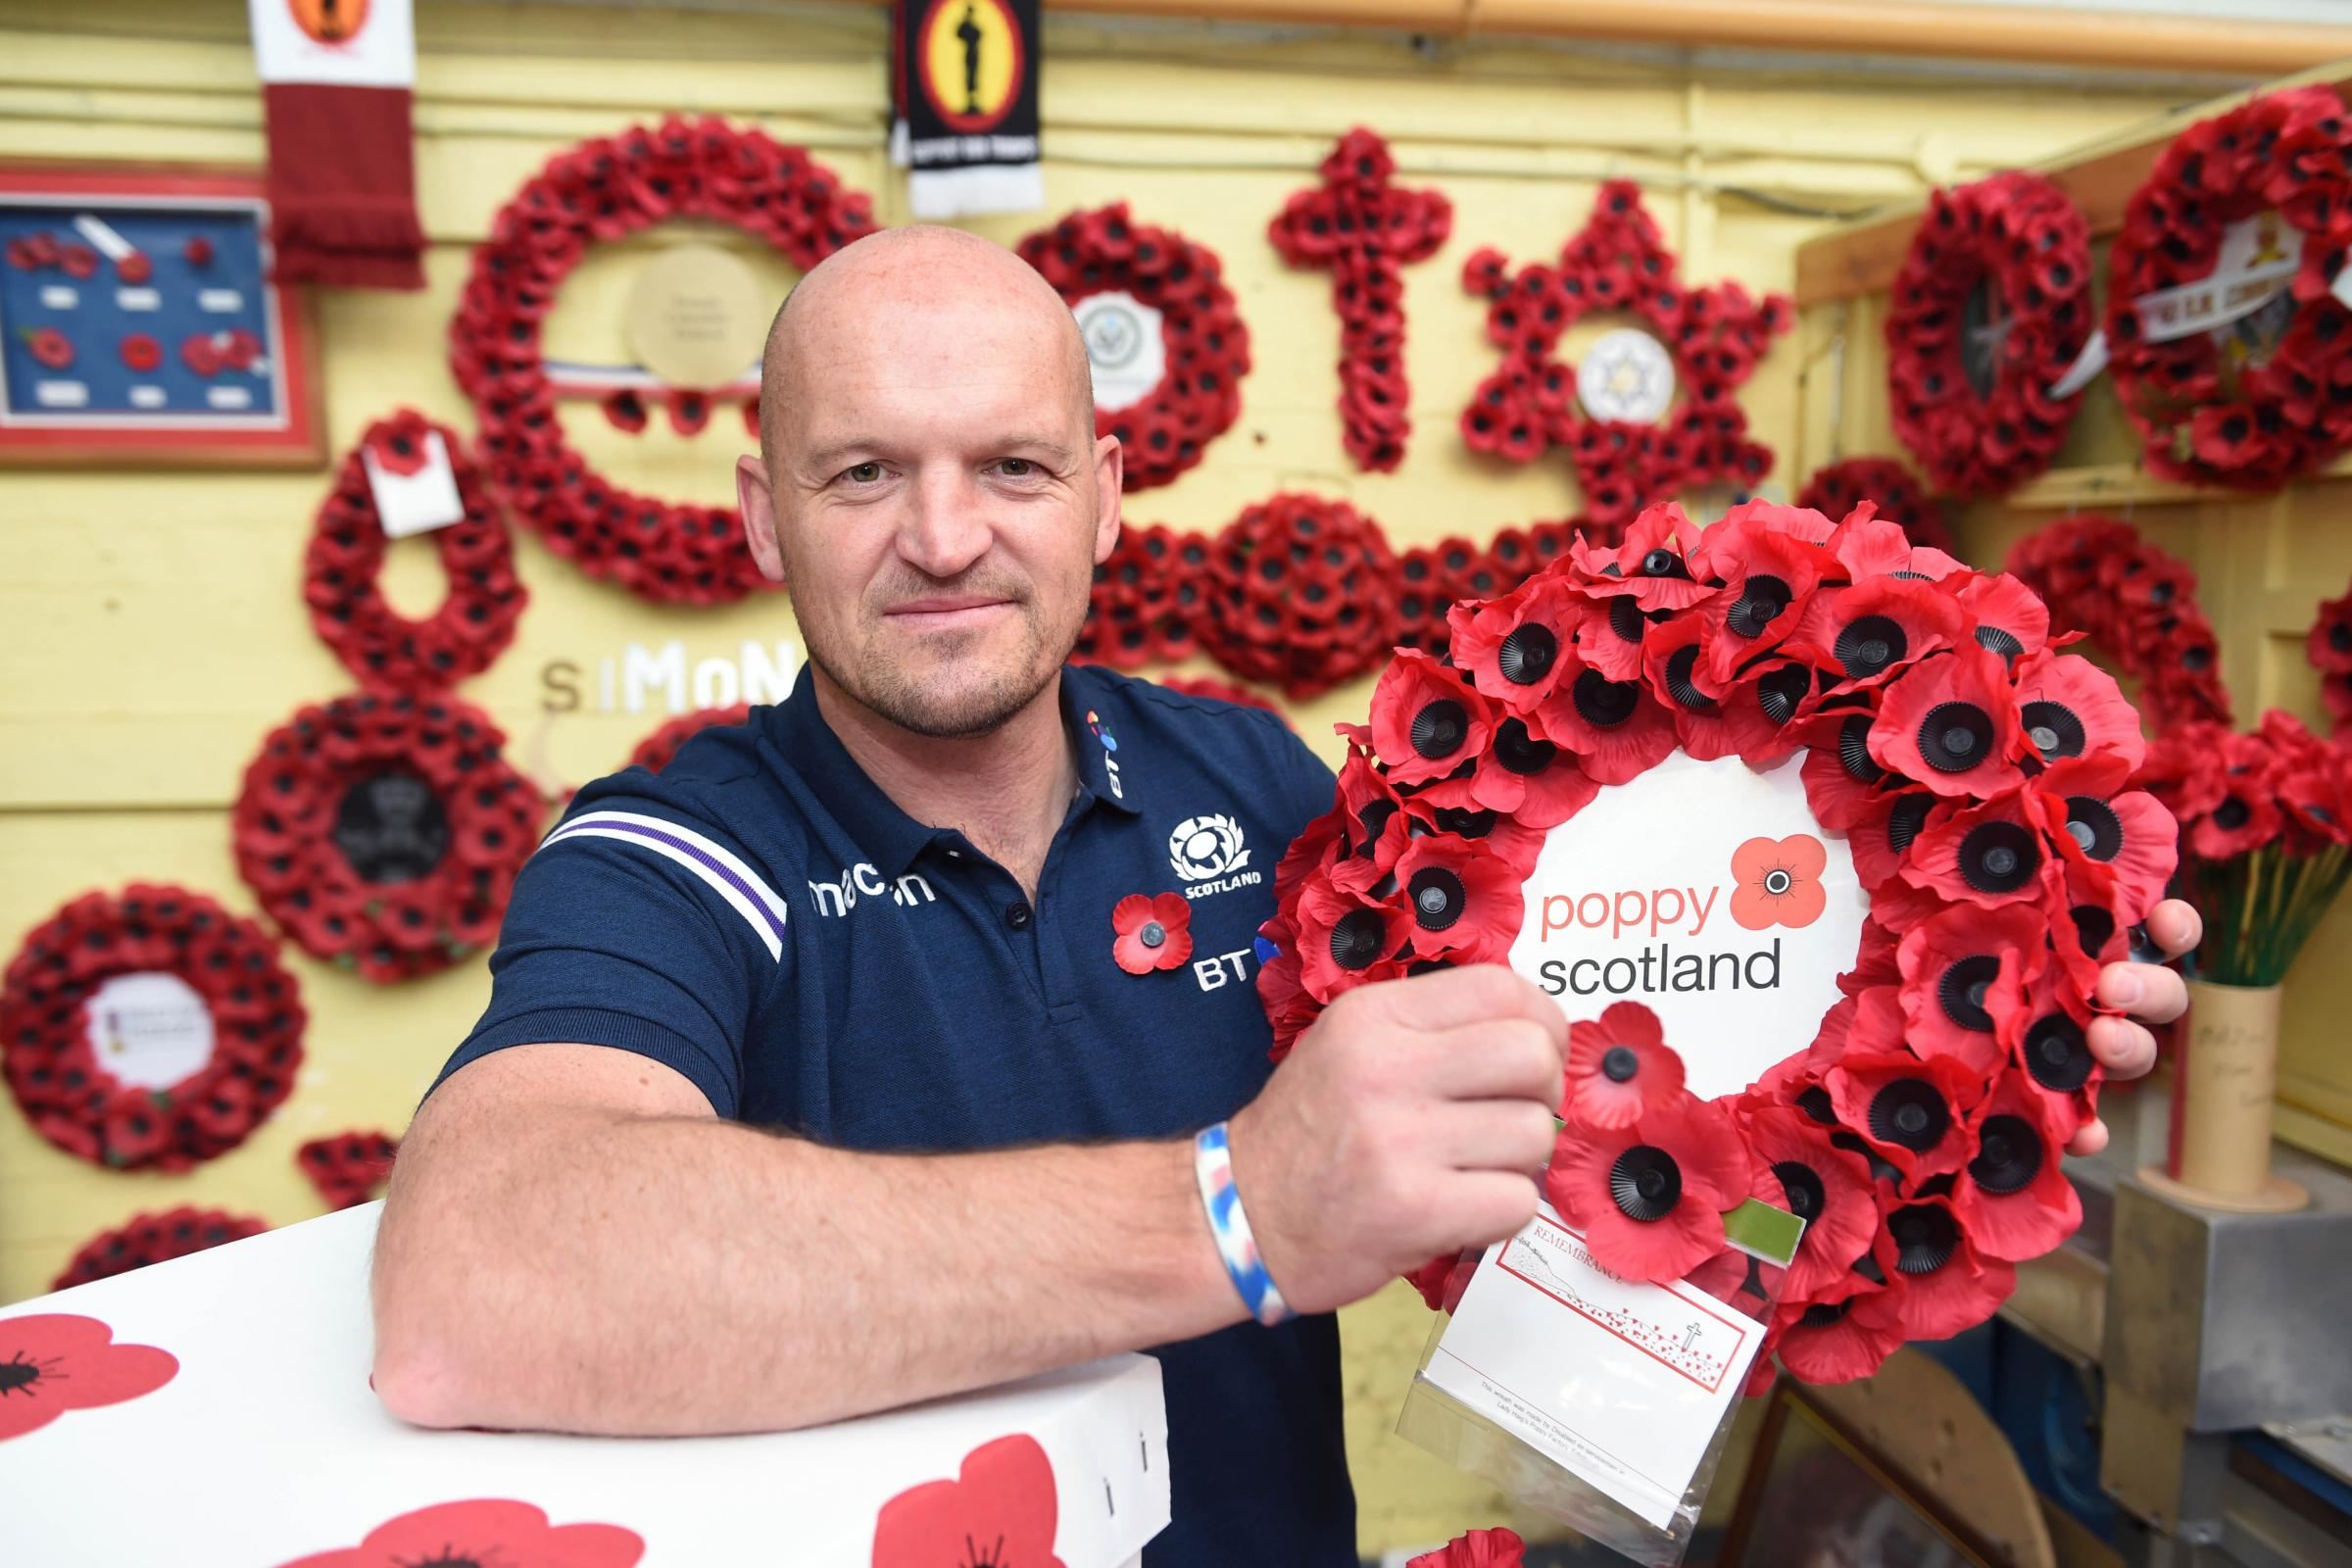 Handout photo issued by Poppyscotland of Scotland national rugby head coach Gregor Townsend during a visit to Lady HaigÕs Poppy Factory (LHPF) in Edinburgh, as he lends his support to the veterans' charity to help with the dispatch of poppies for the 2